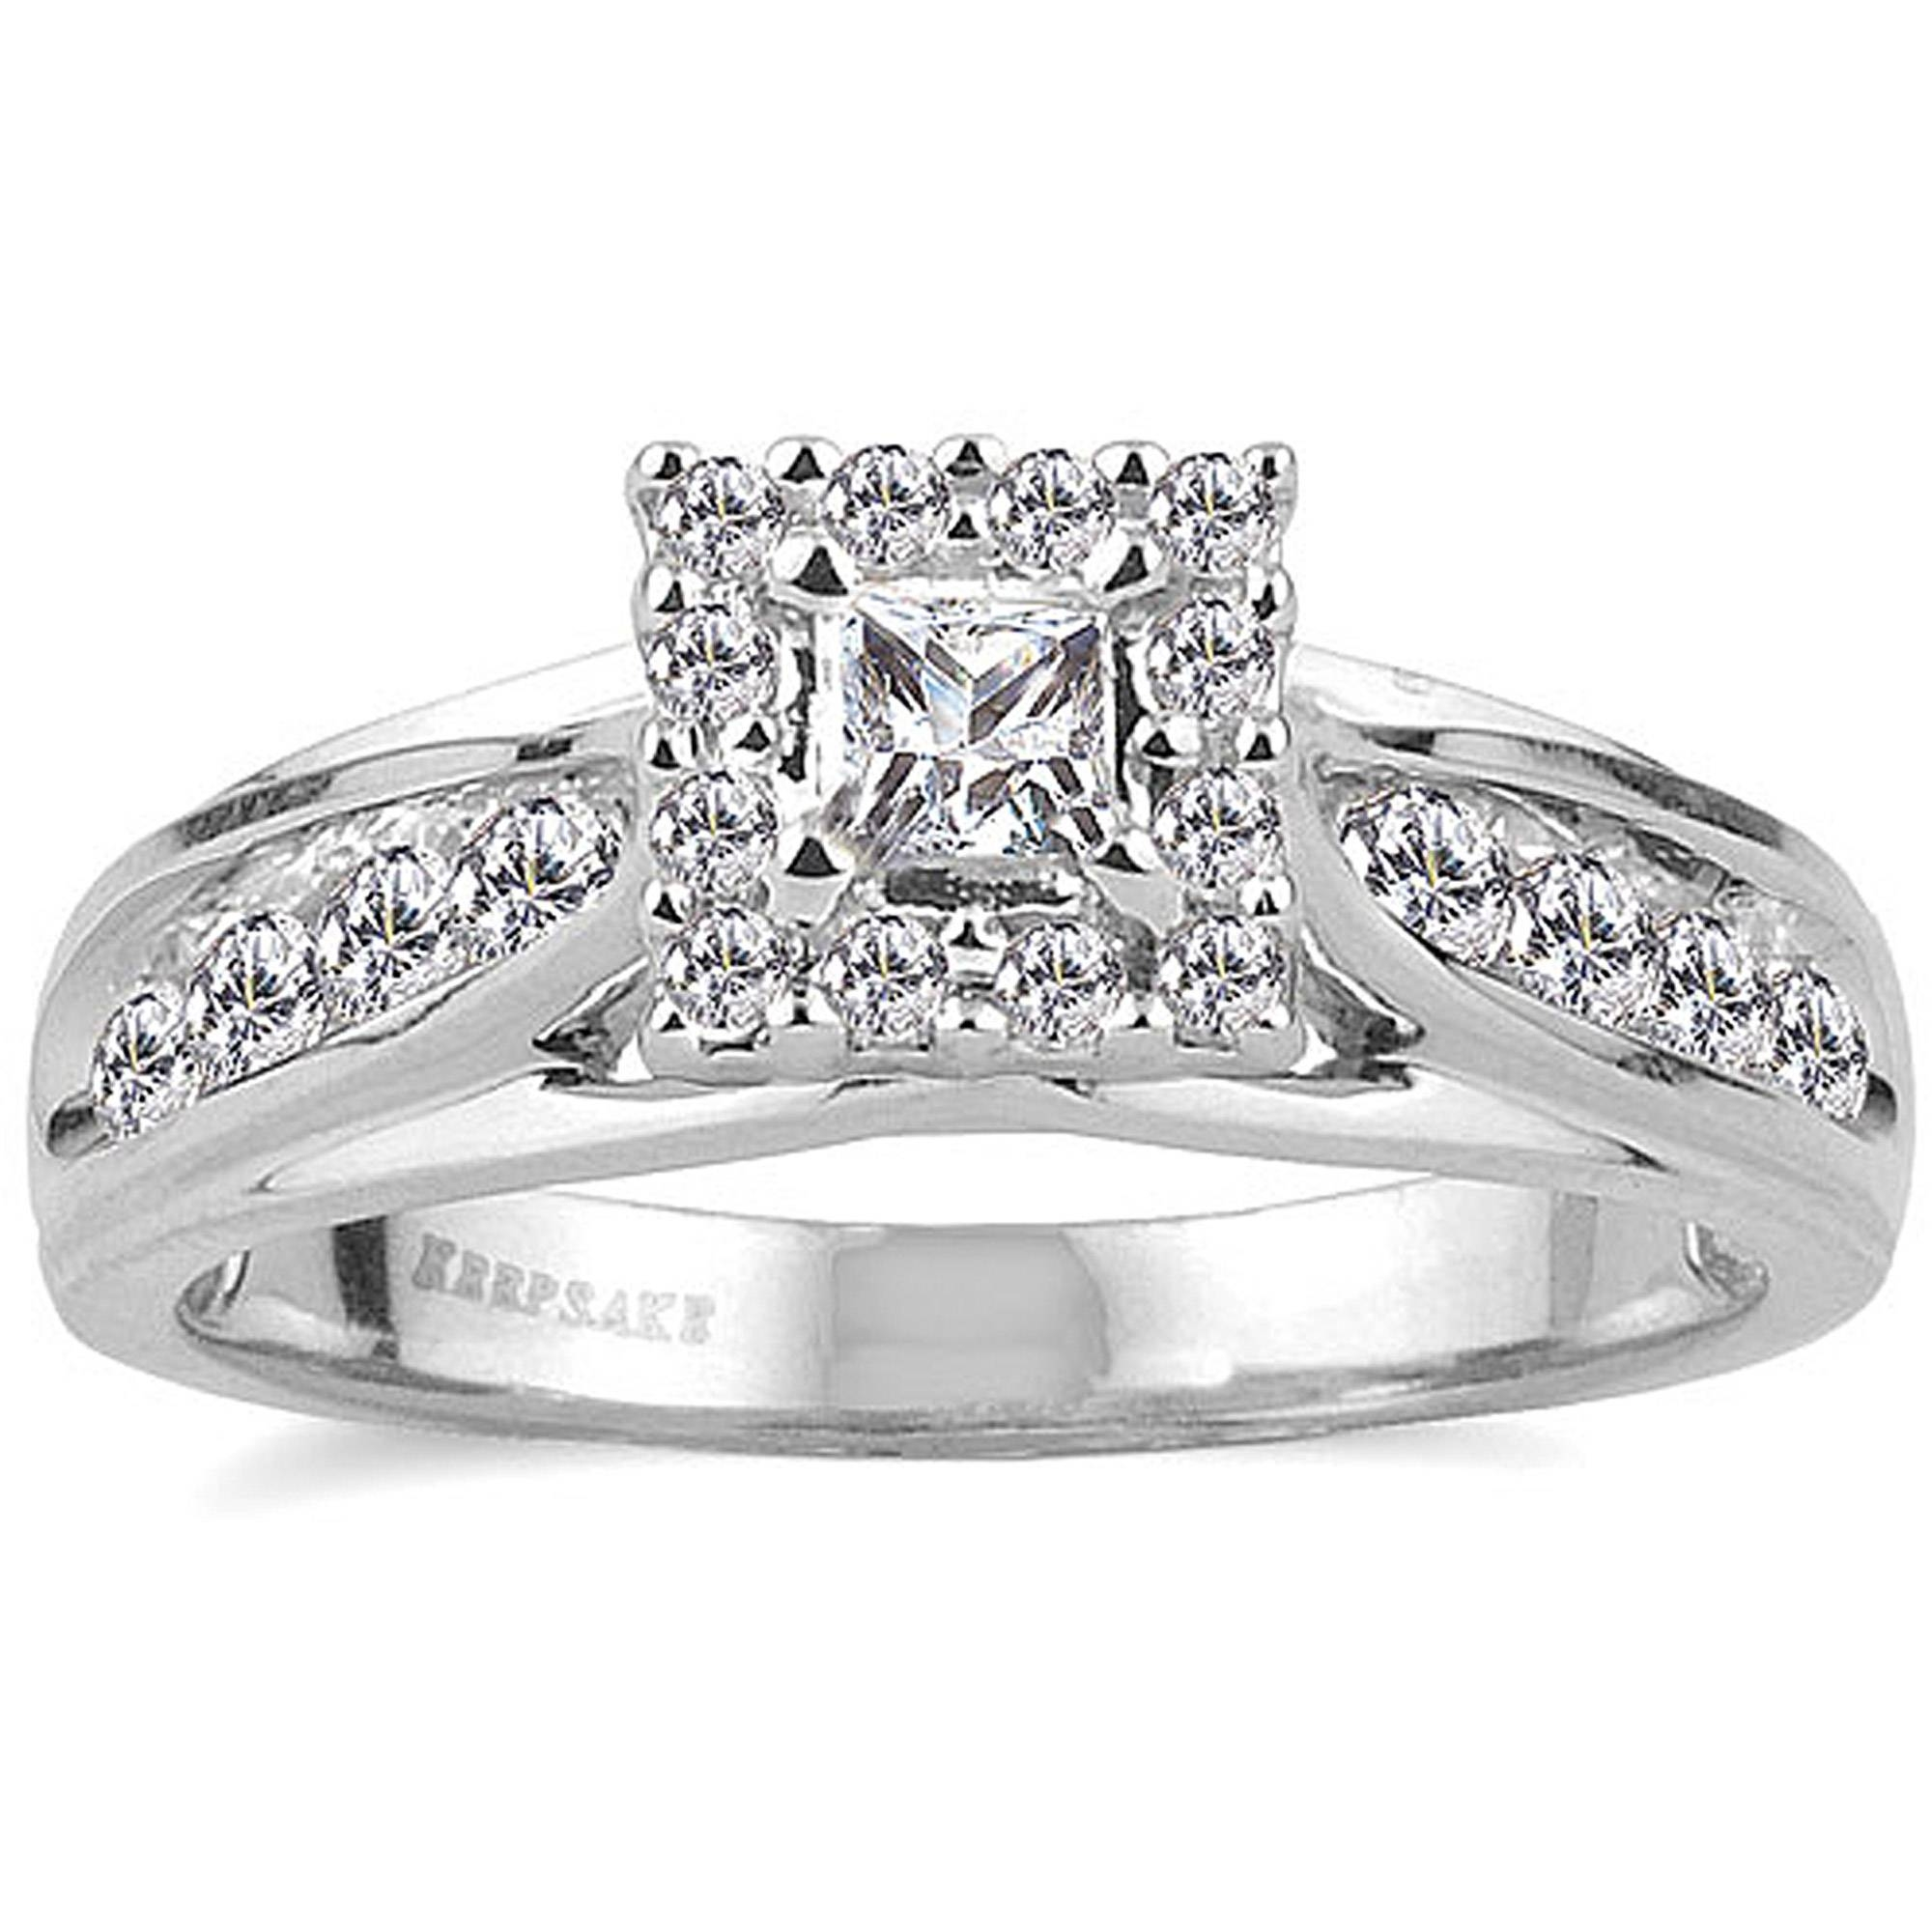 idea stacked modern double the elegant way done but more medieval rings a love wedding in pin